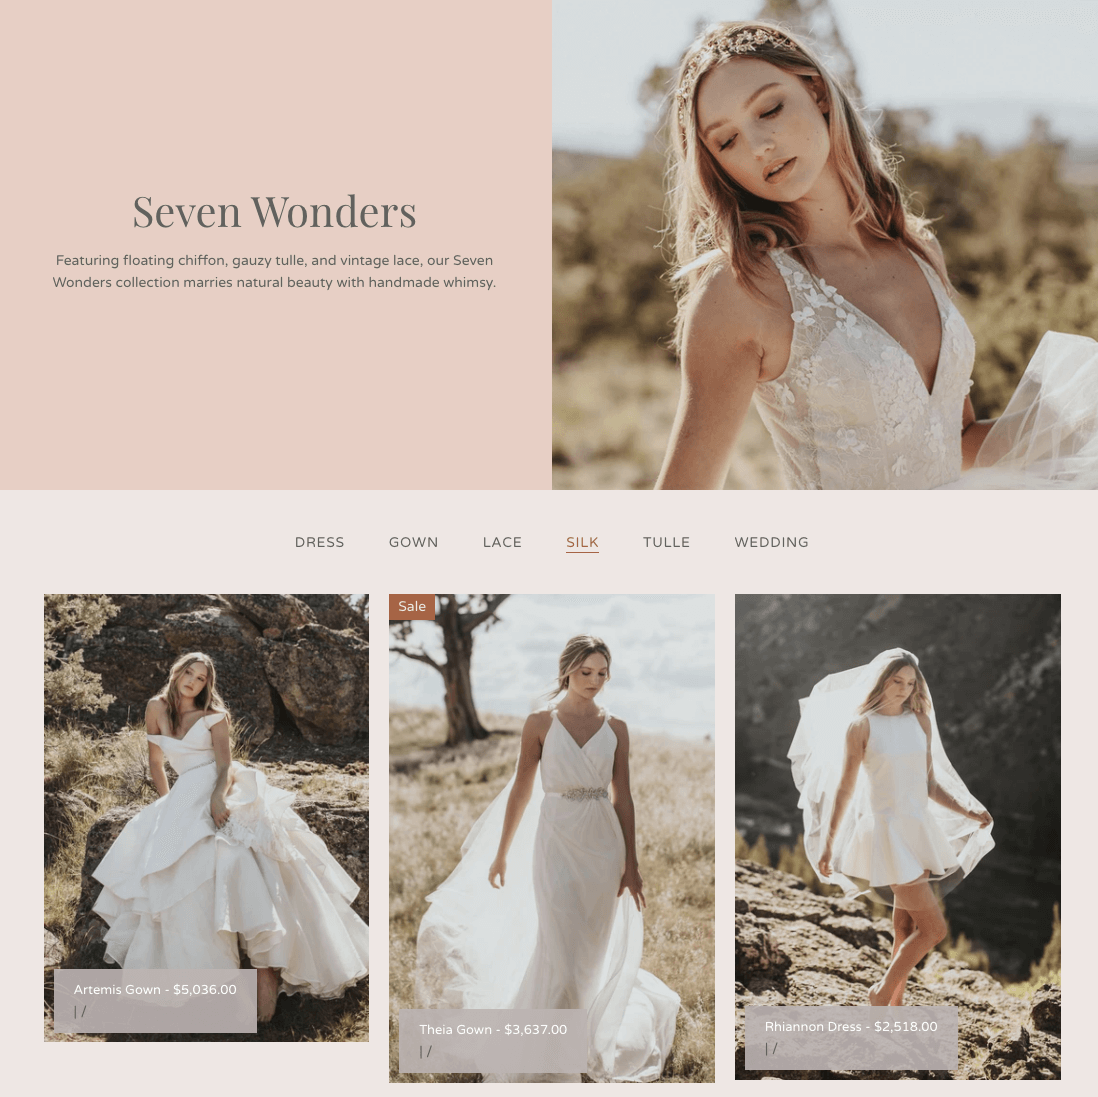 Image of 'Vogue Theme' for Shopify stores.